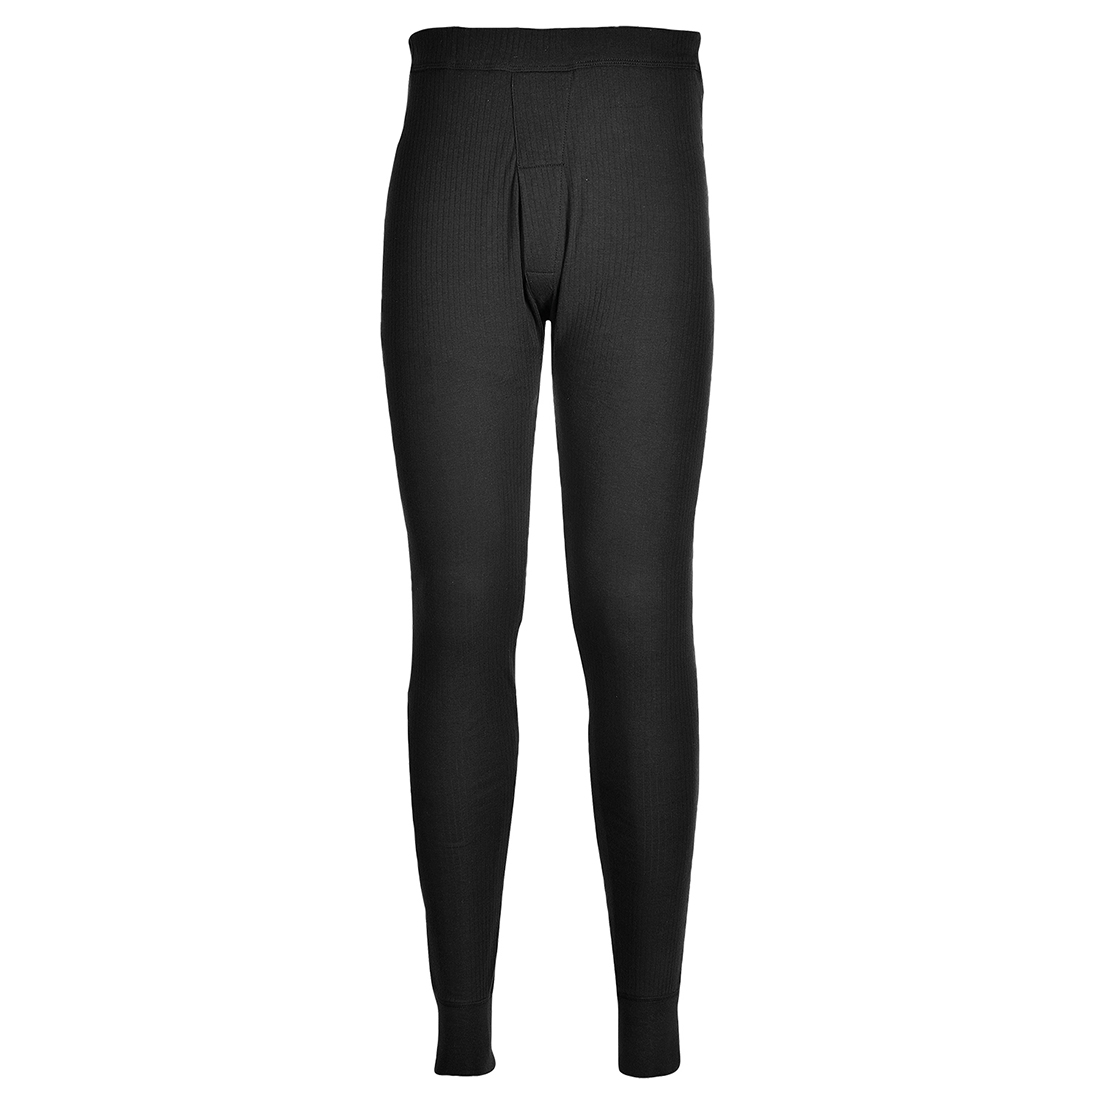 Portwest Thermal Trouser - B121